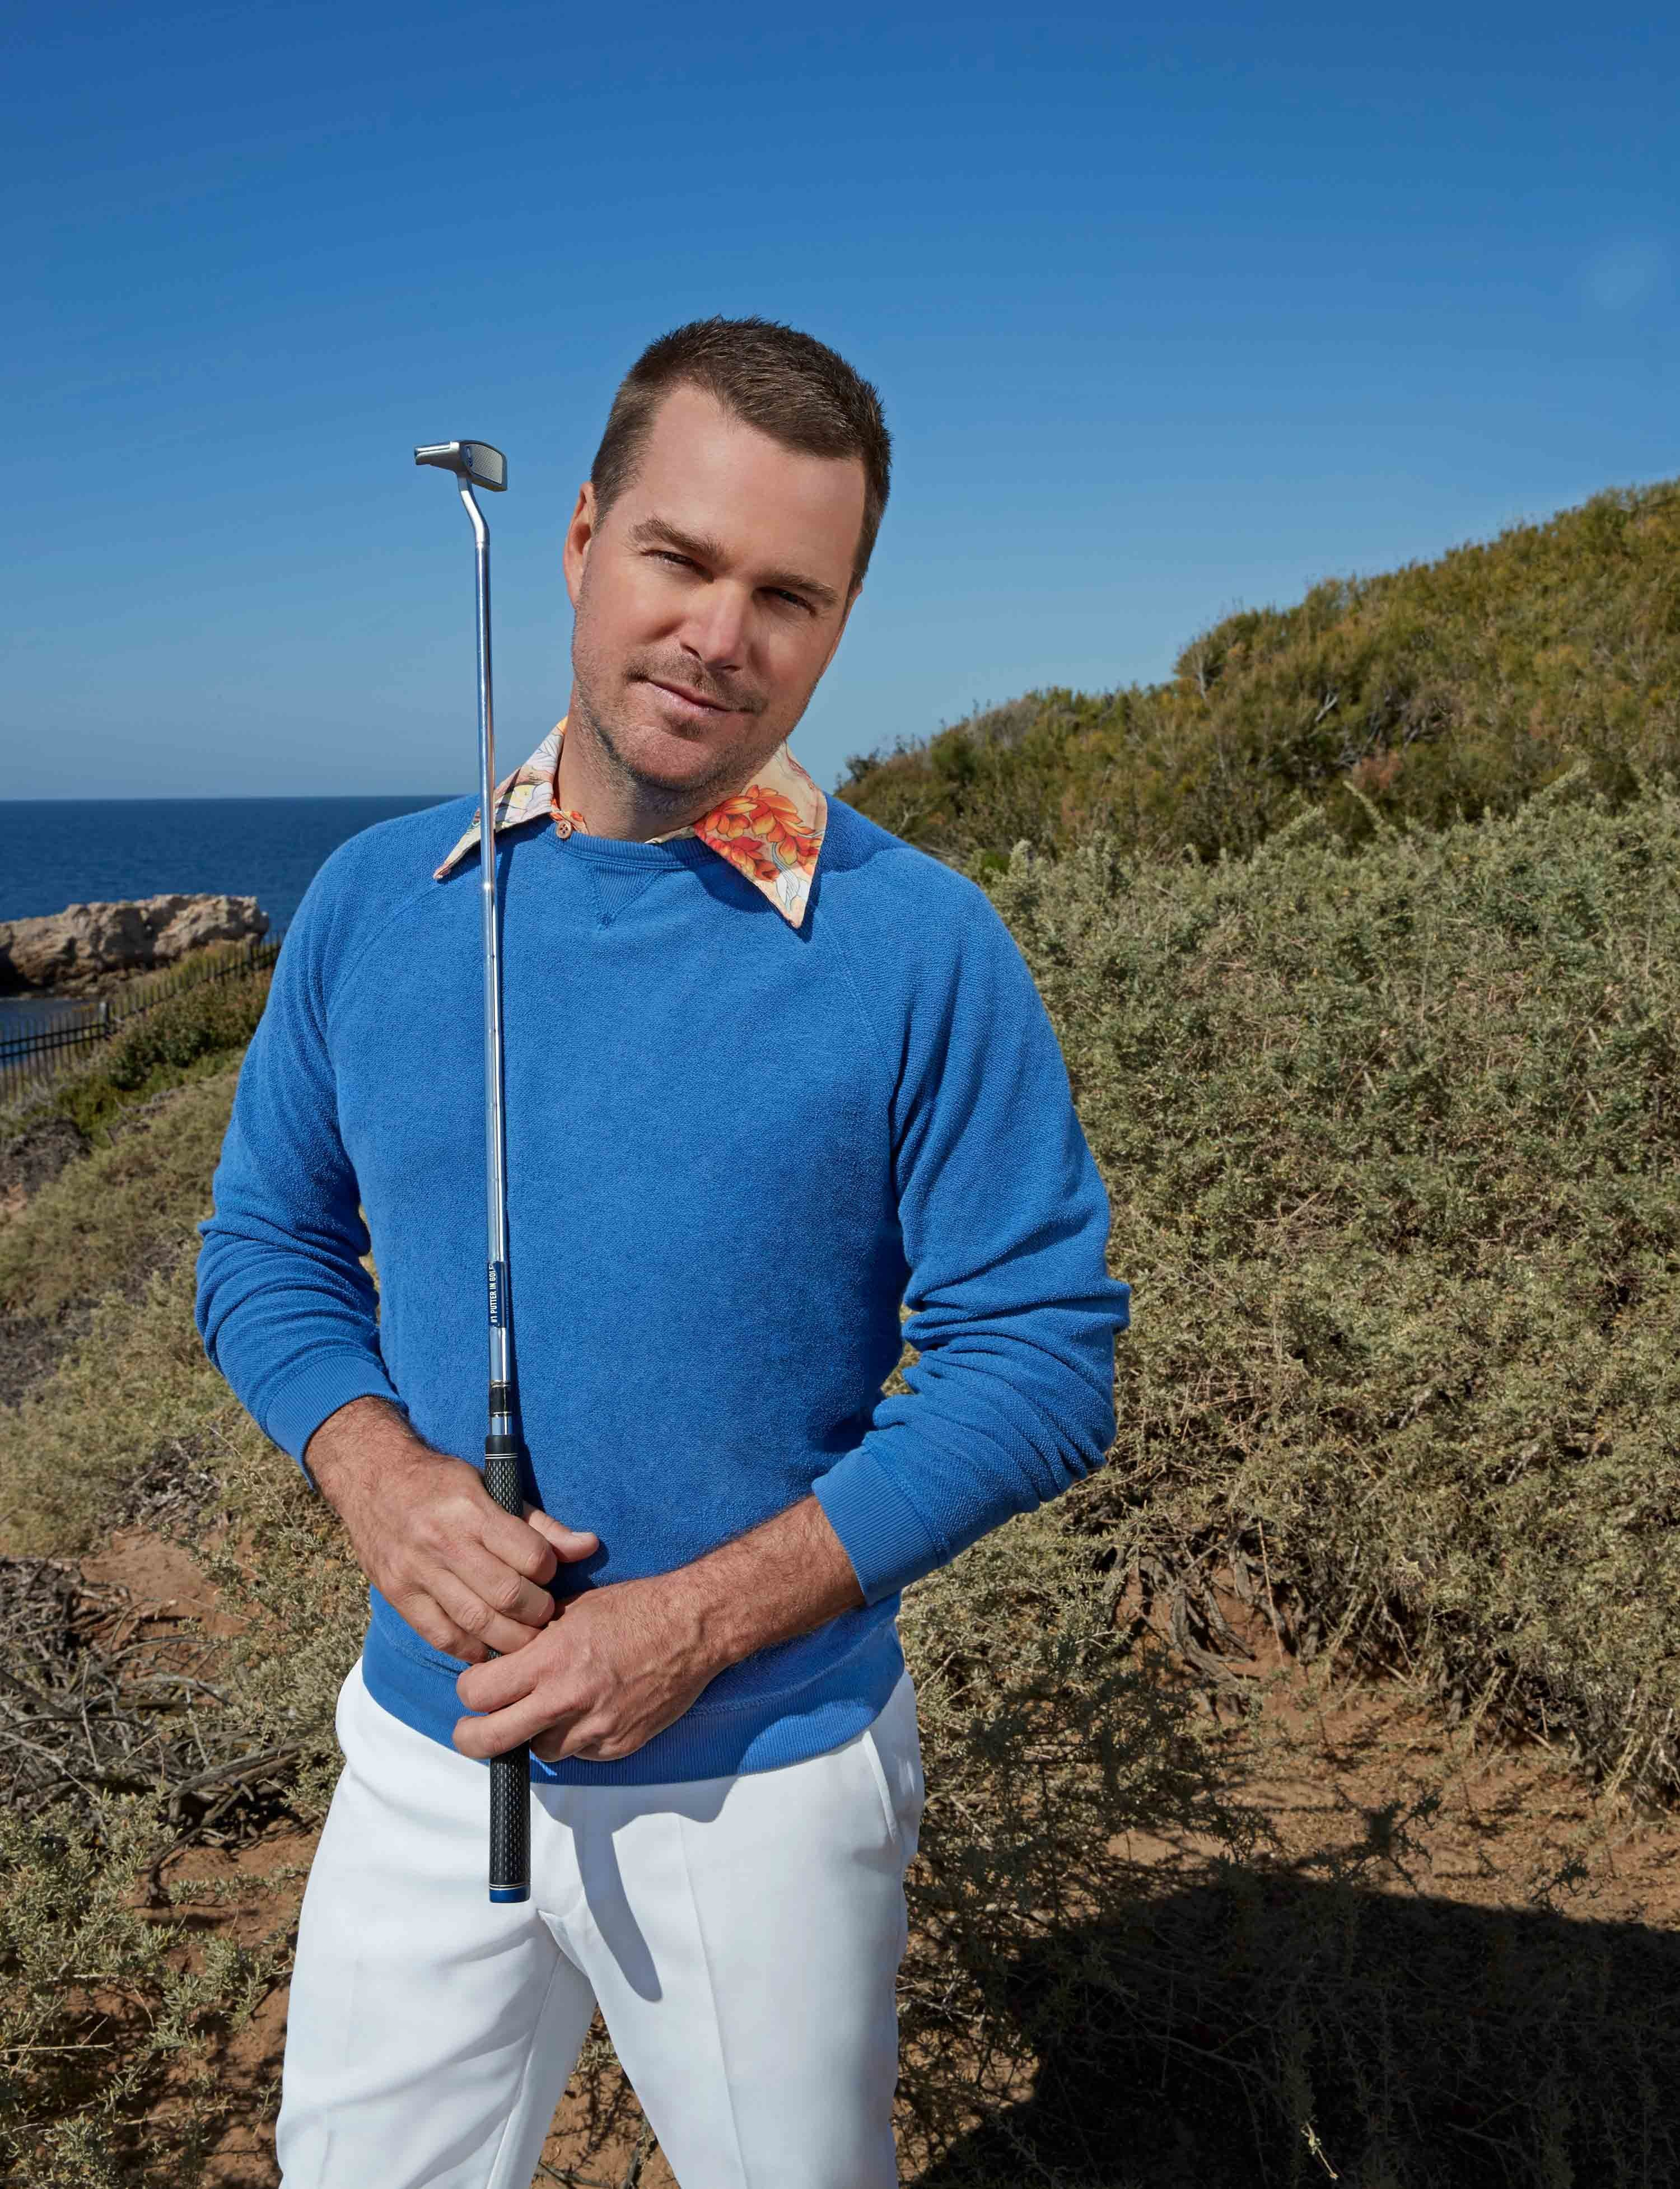 Chris O'Donnell holding a gold club